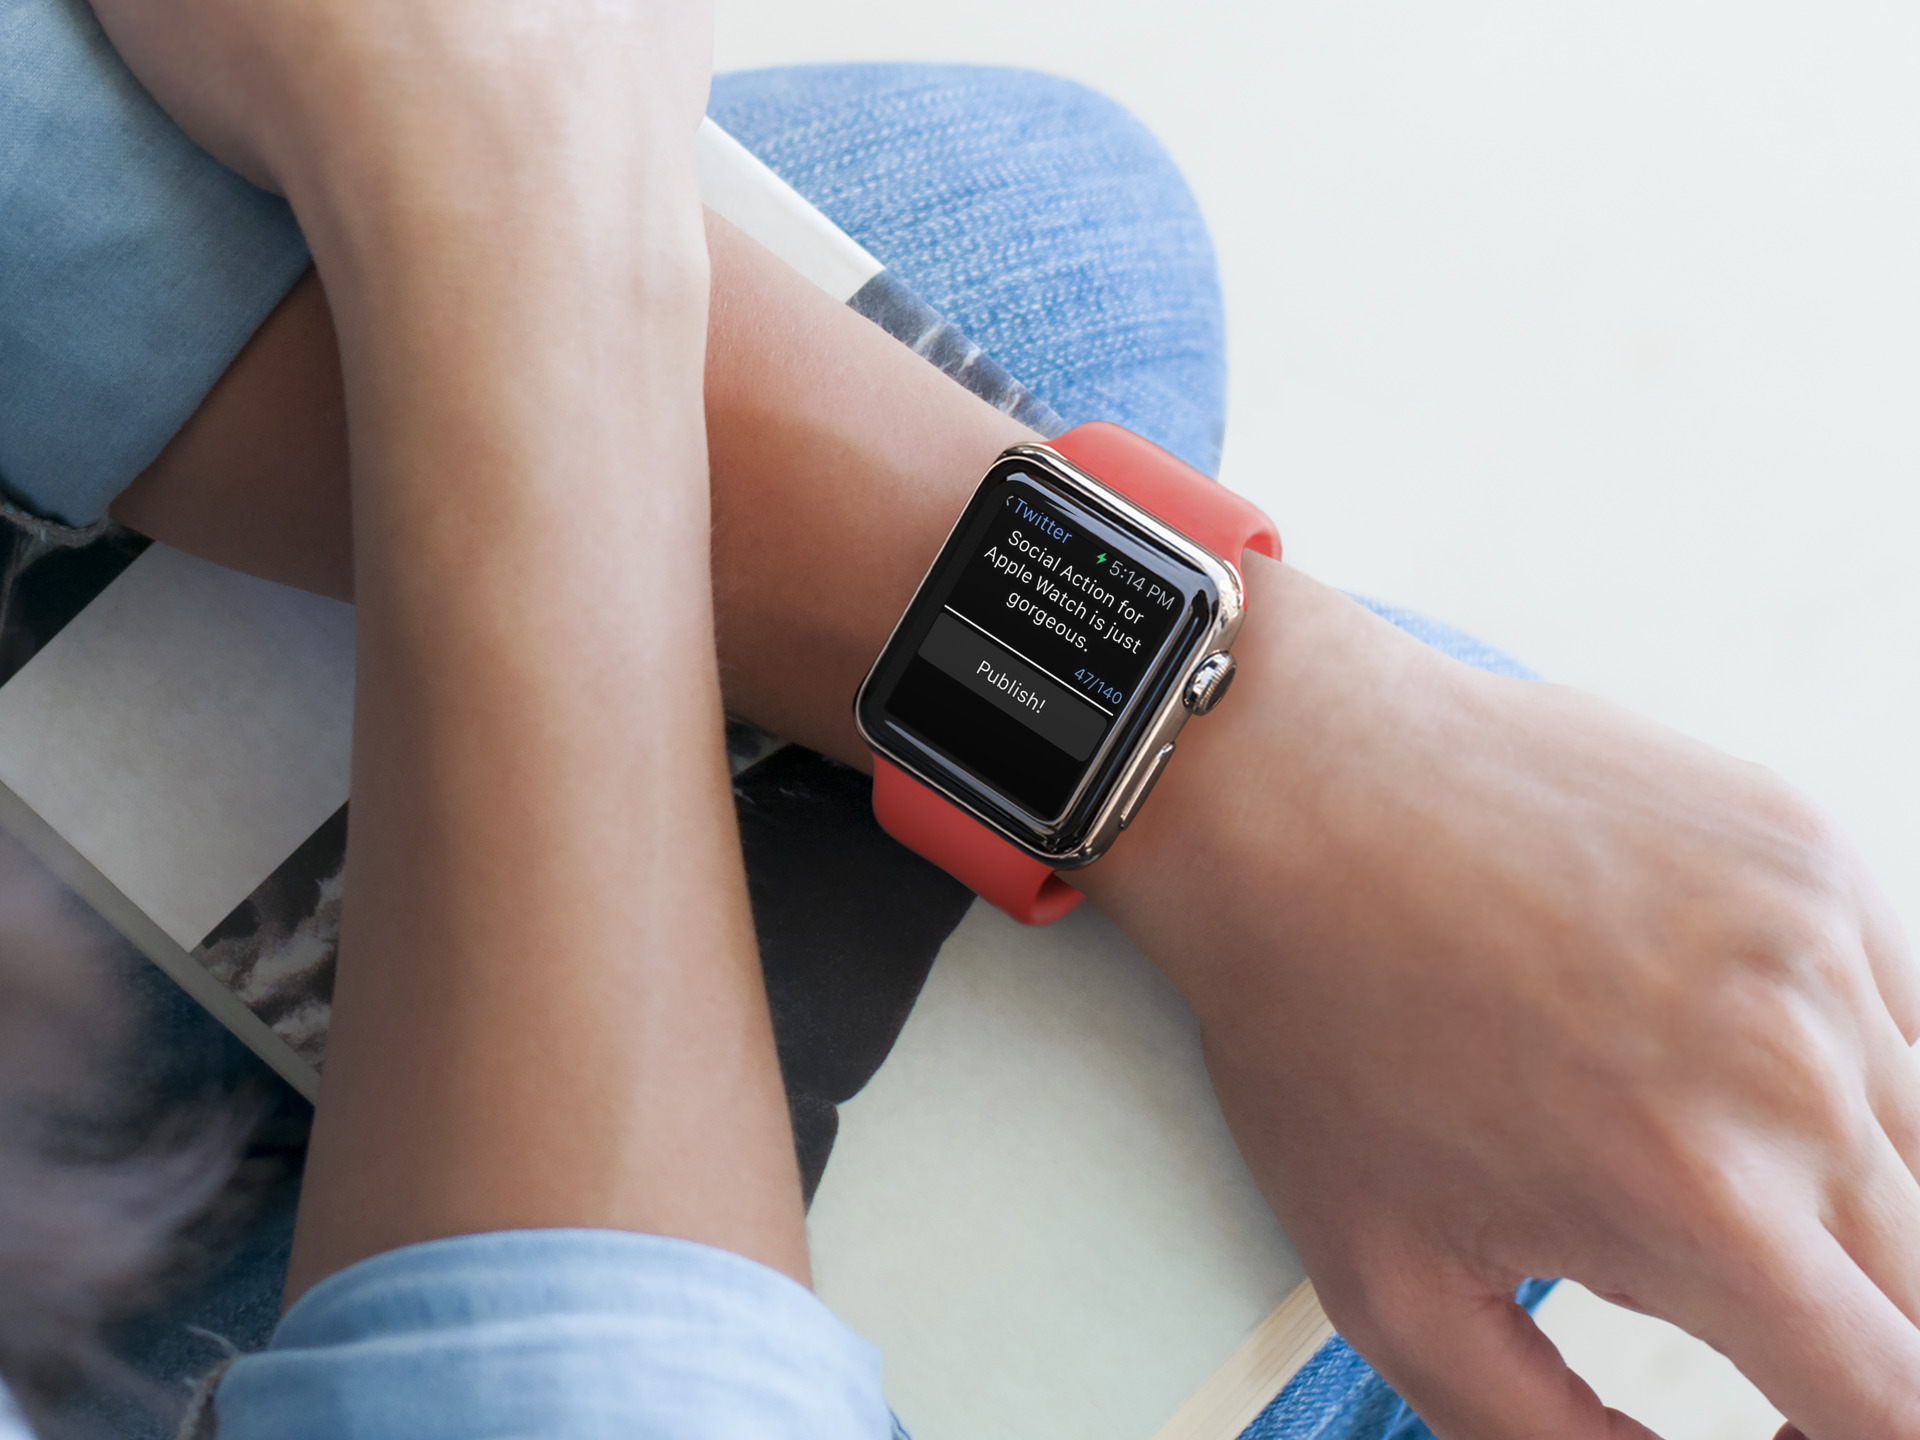 Social Action lets you post quickly from your wrist